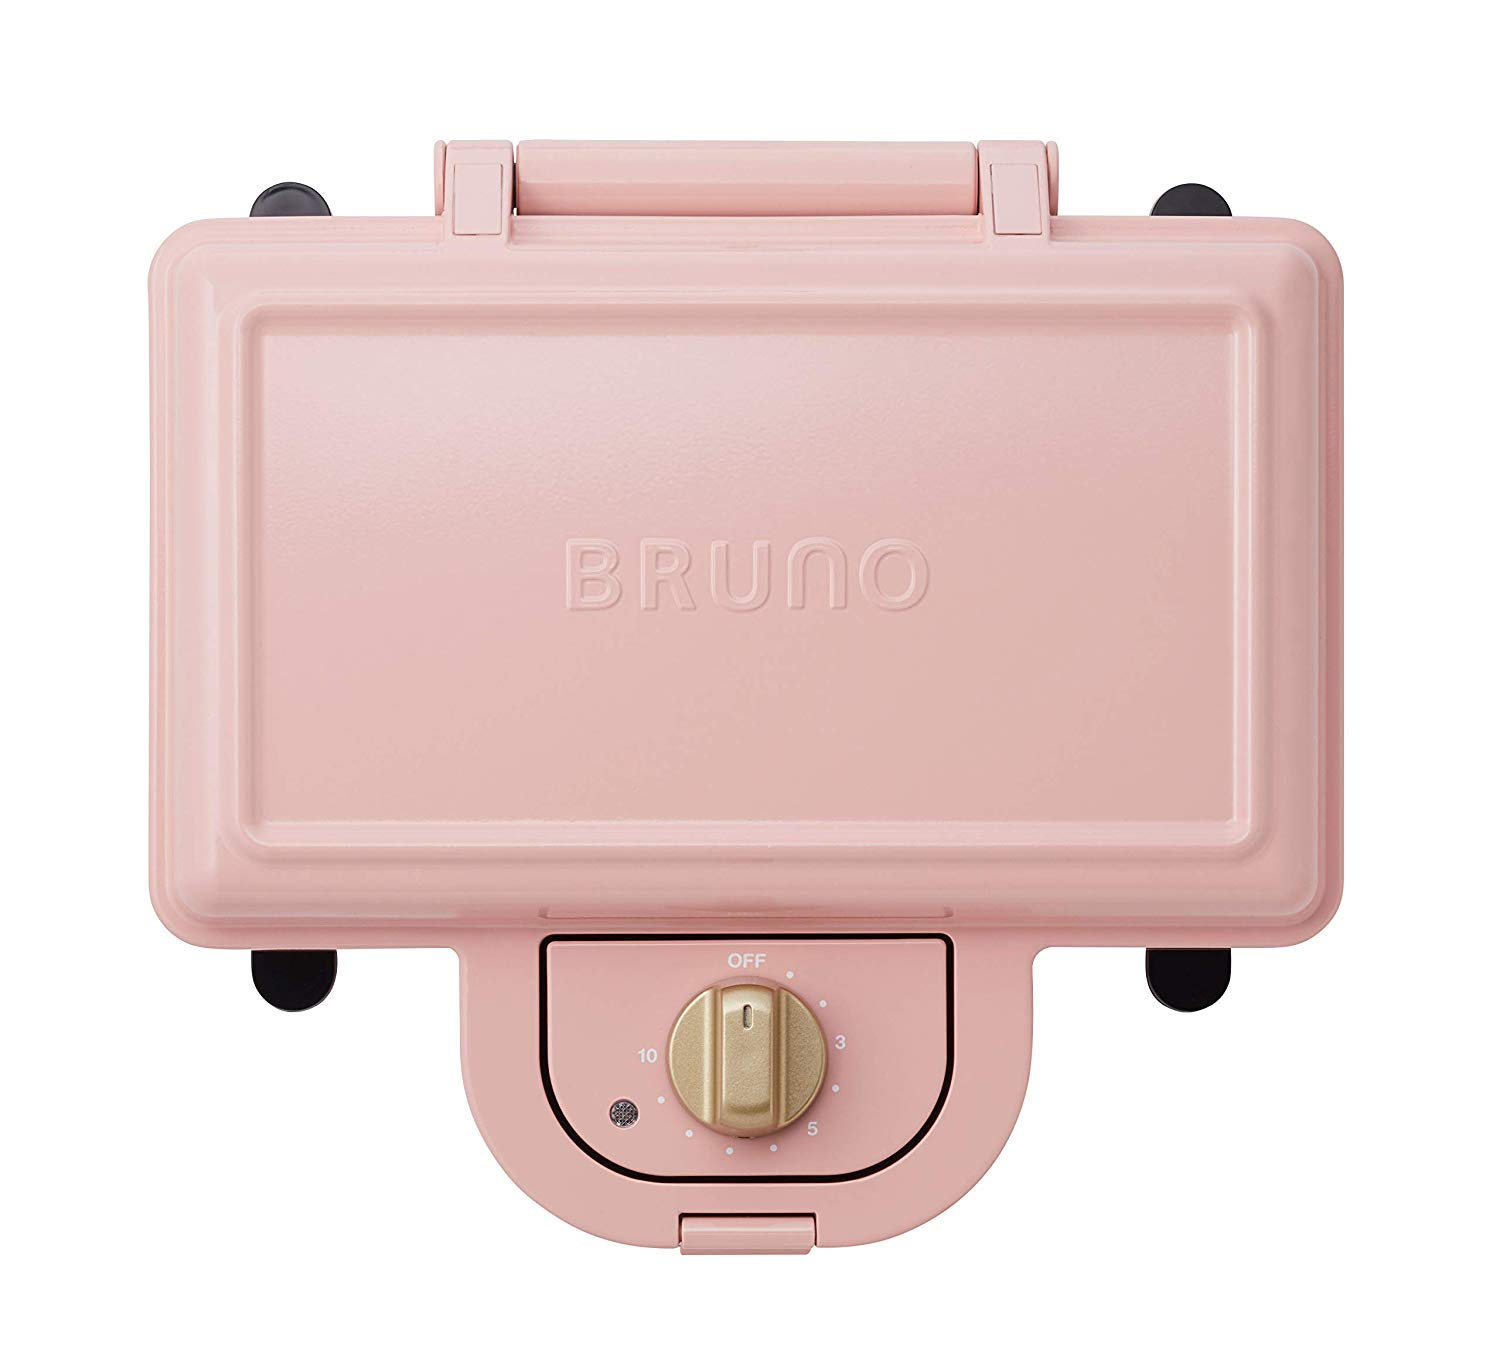 BRUNO Hot Sand Maker Double (Pale Pink) BOE044-PPK【Japan Domestic genuine products】【Ships from JAPAN】